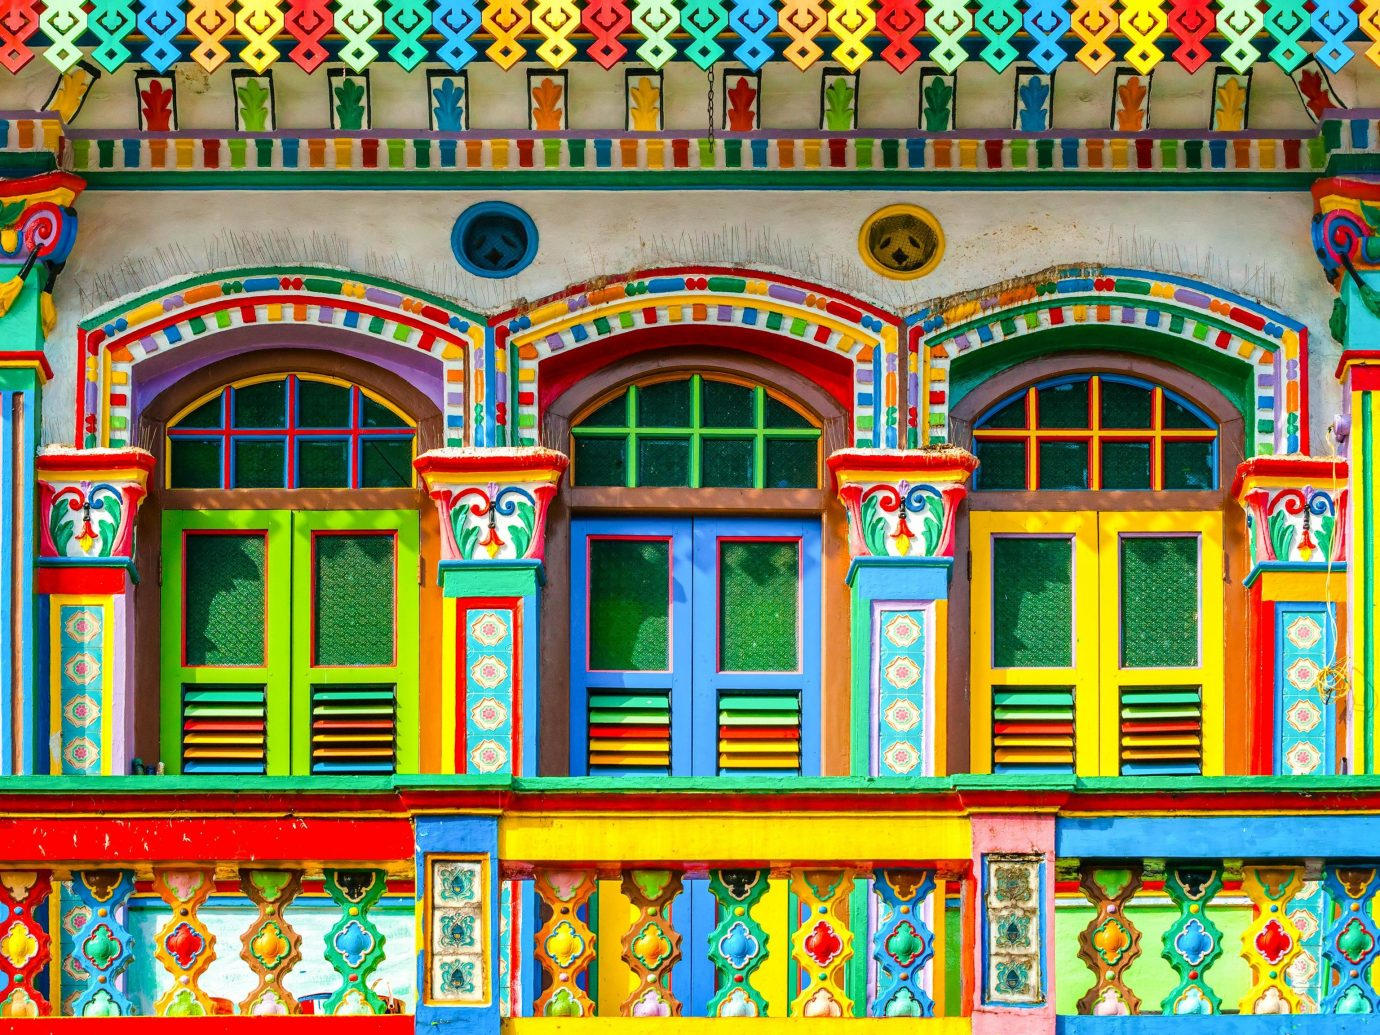 Offbeat Singapore Trip Ideas landmark window facade pattern arch synagogue